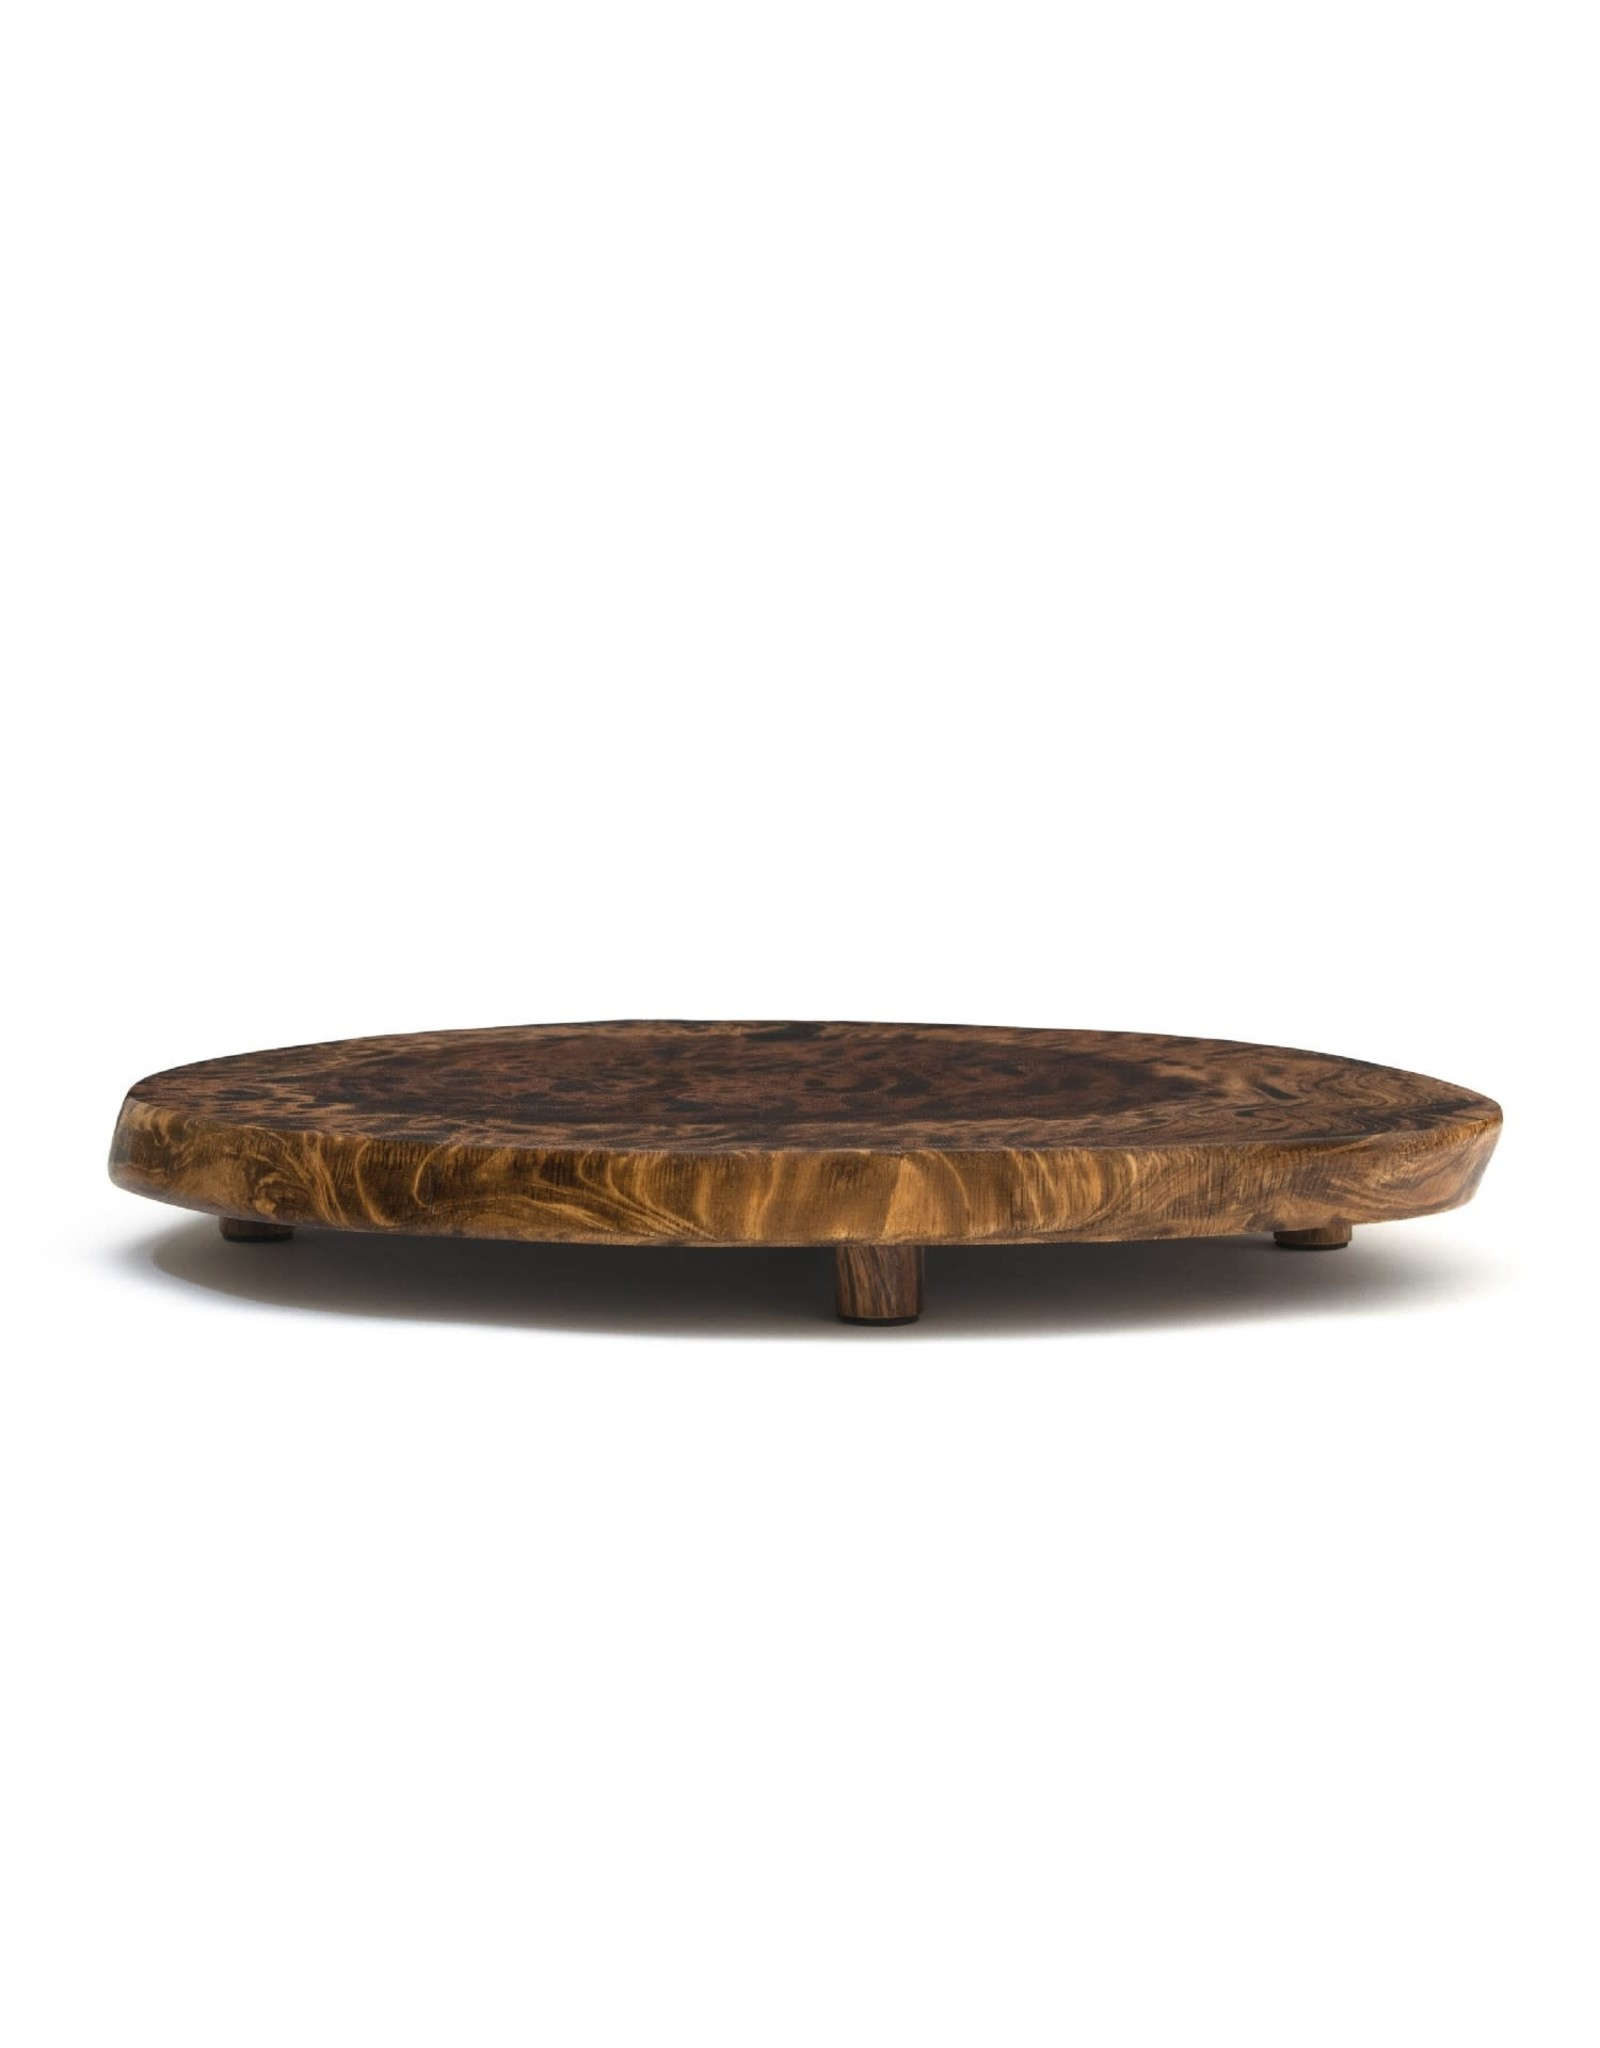 Lipper LIPPER-Burl Finish Serving Boards with Feet